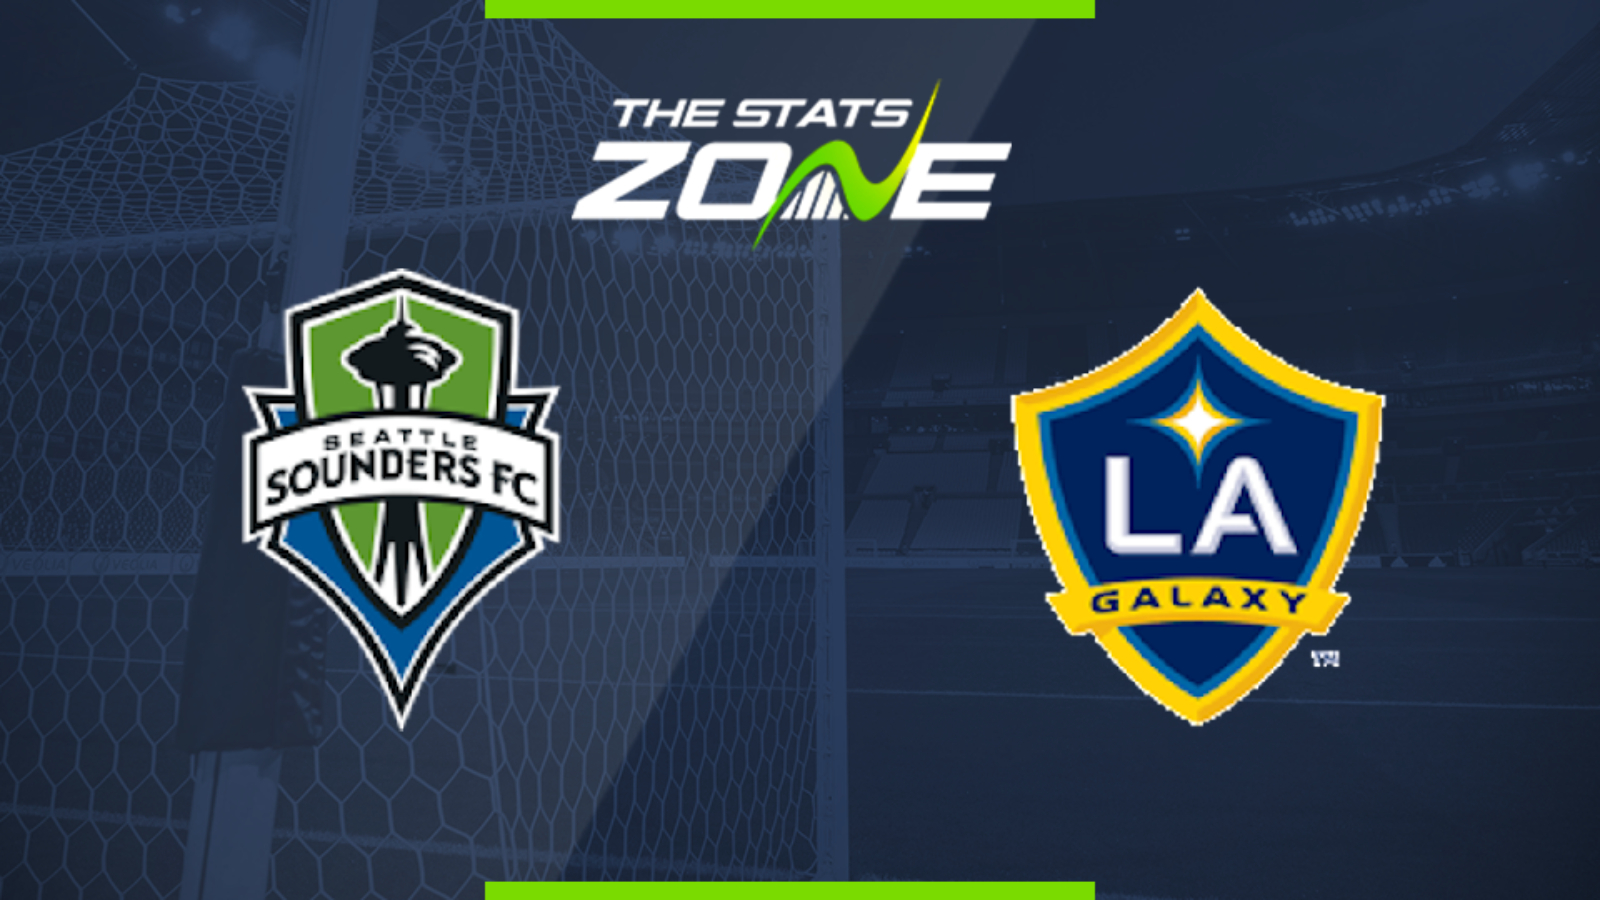 Seattle sounders vs la galaxy betting tips online chess betting games for final four